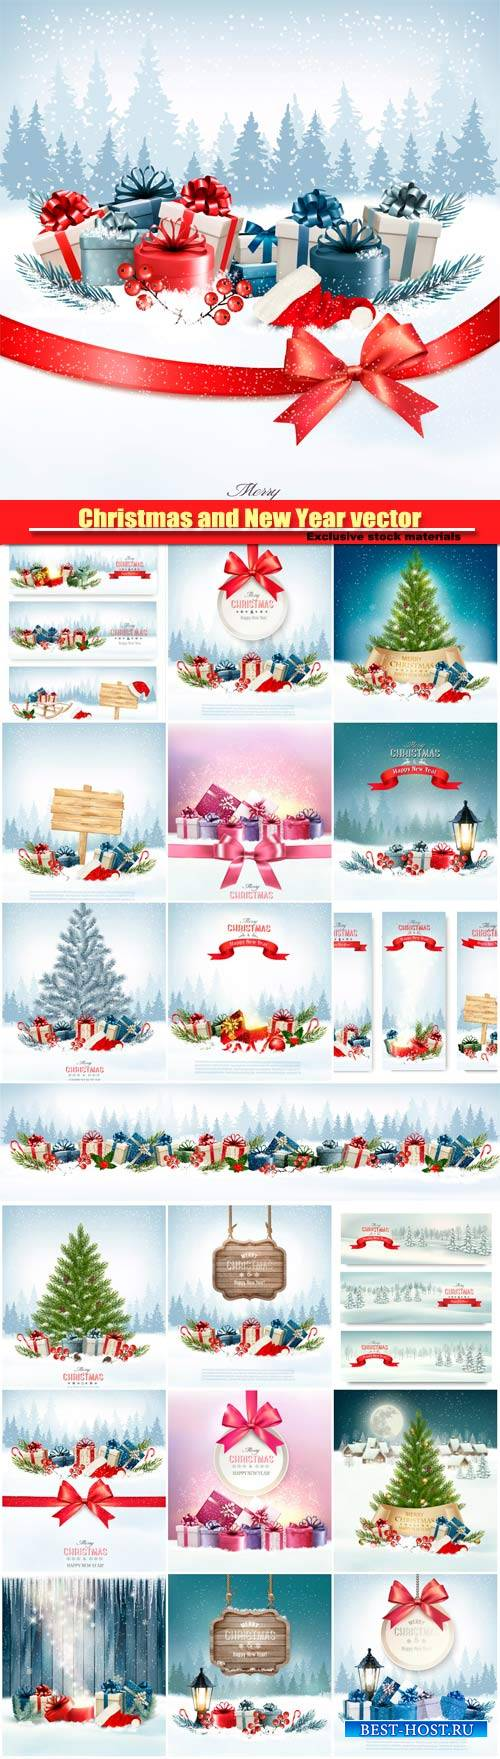 Christmas and New Year vector, holiday background, christmas tree and prese ...